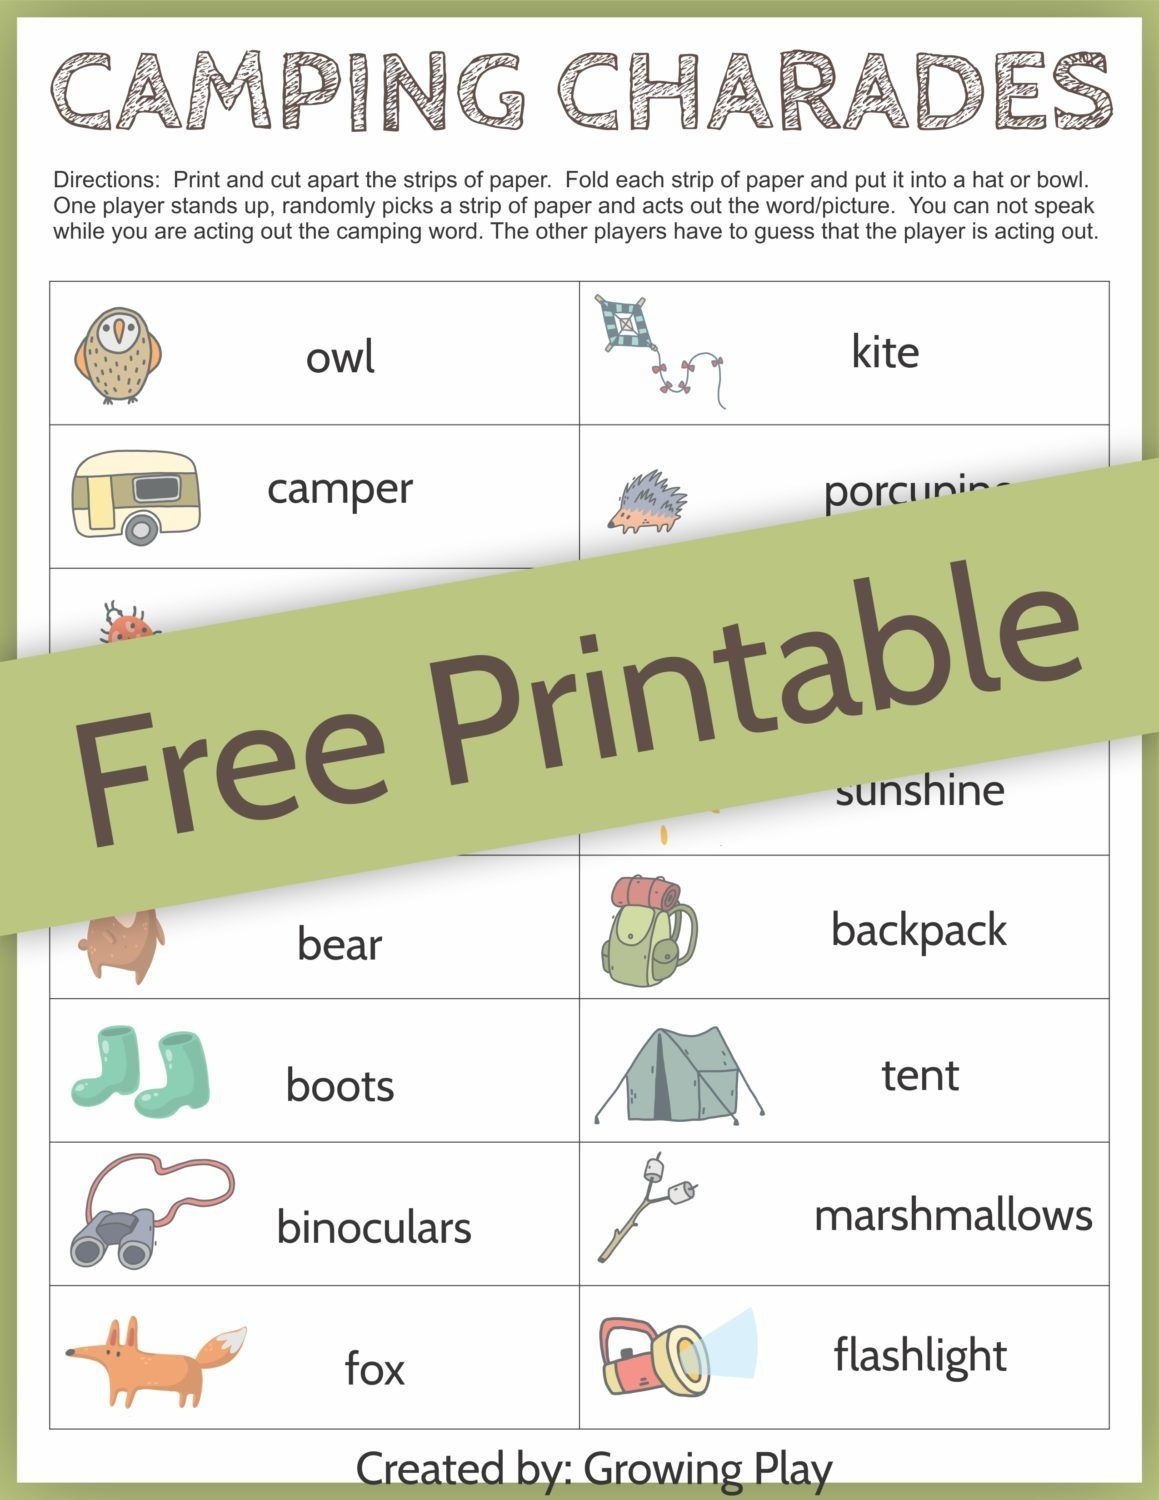 Camping Charades Game For Kids - Free Printable   Camping   Free - Free Printable Camping Games